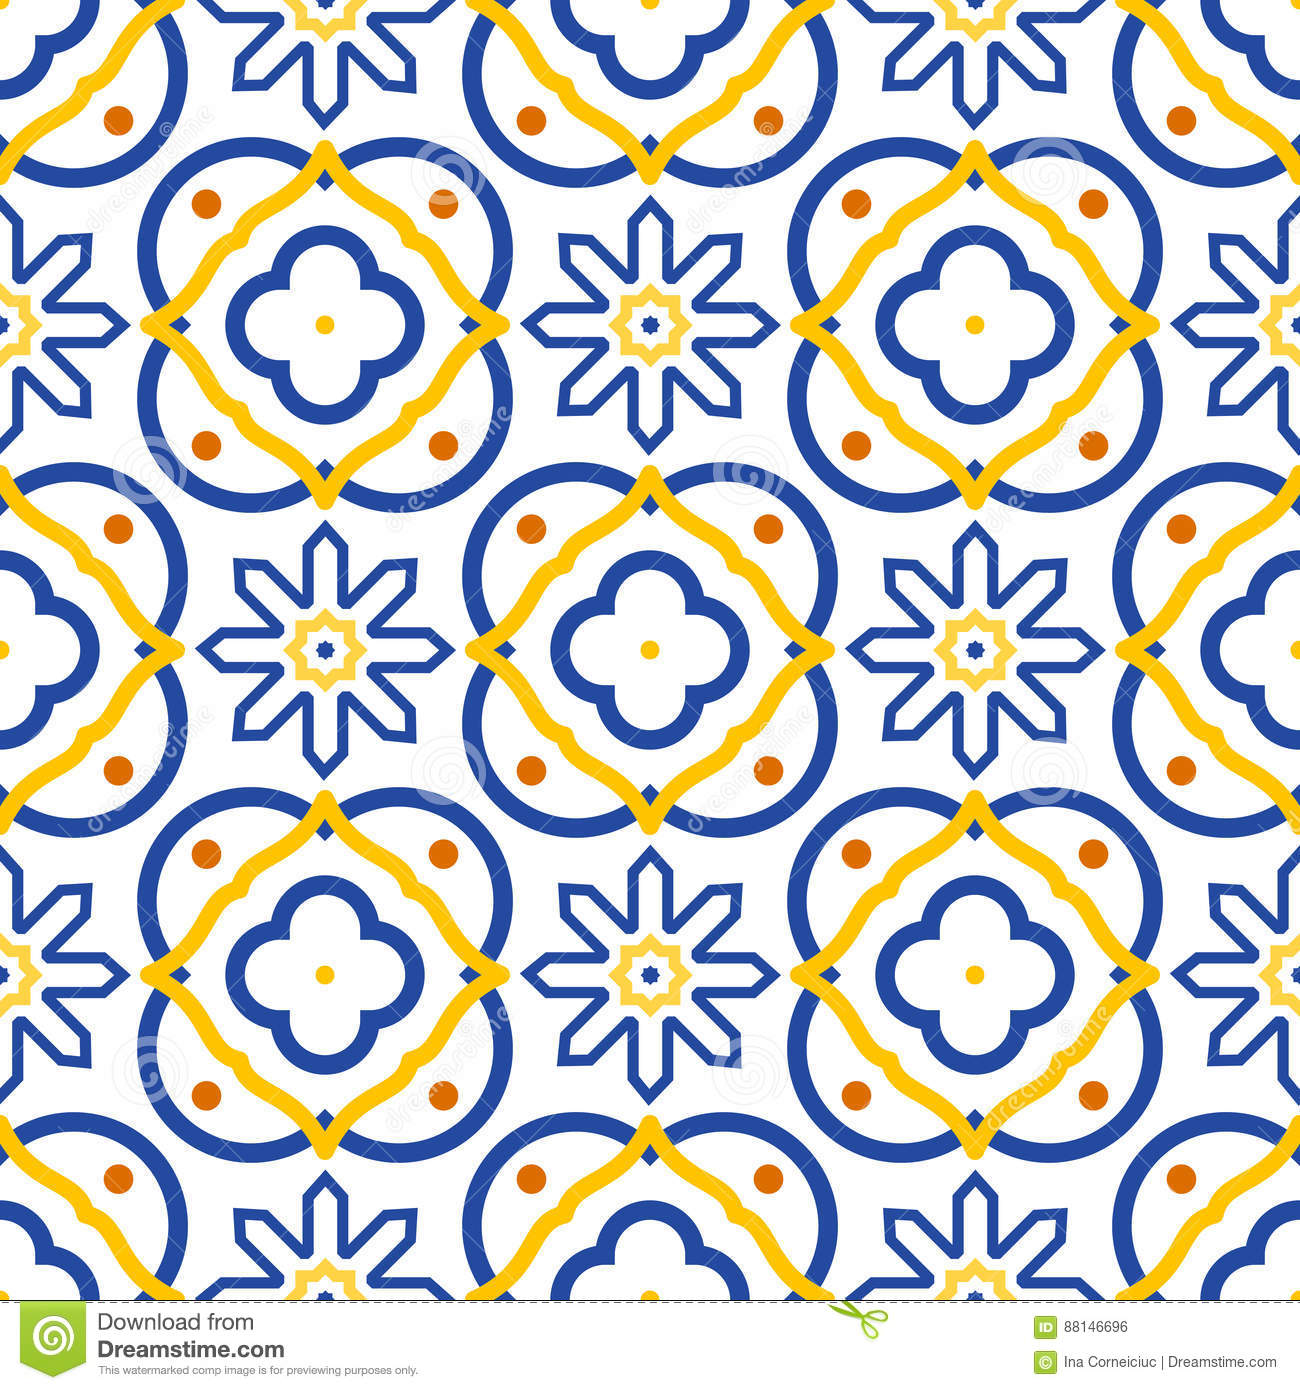 Azulejos Blue And White Mediterranean Seamless Tile Pattern. Stock ...